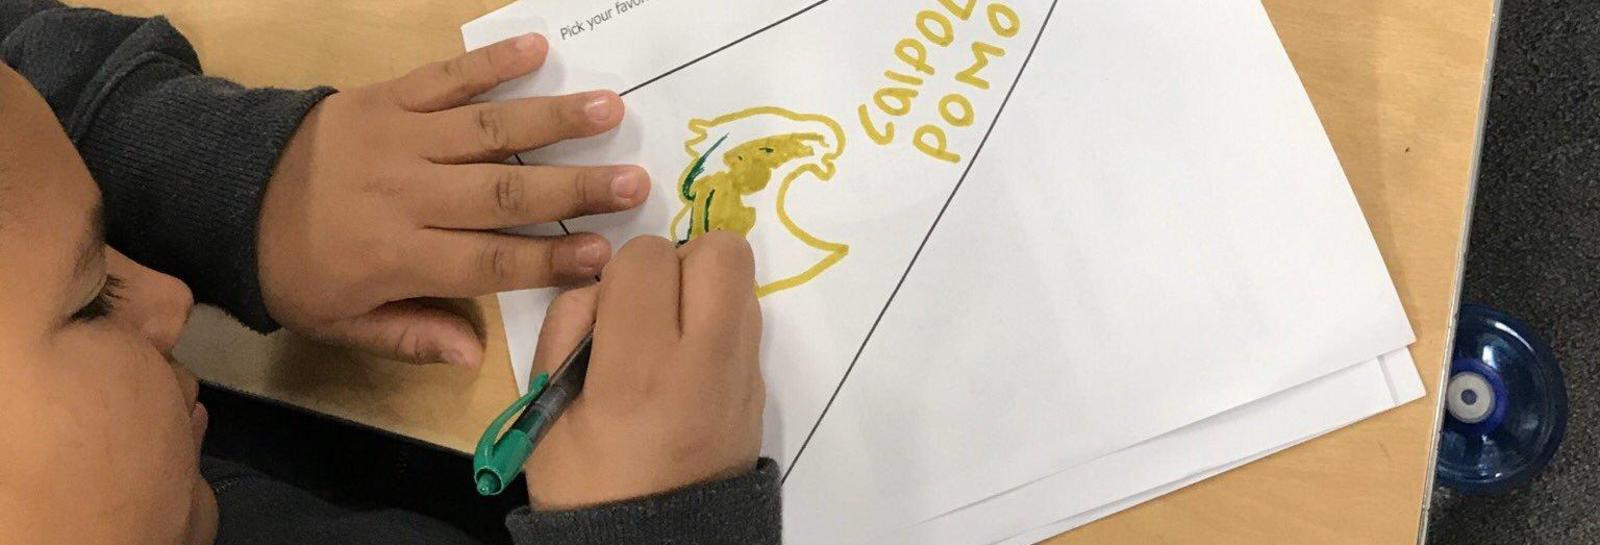 Kellogg Panthers are College bound! - Ms. Hernandez is teaching 4th graders that college preparation starts early! Students got to select their favorite college and drew their own college pennants! #AllMeansALL #proud2bePUSD #scchat